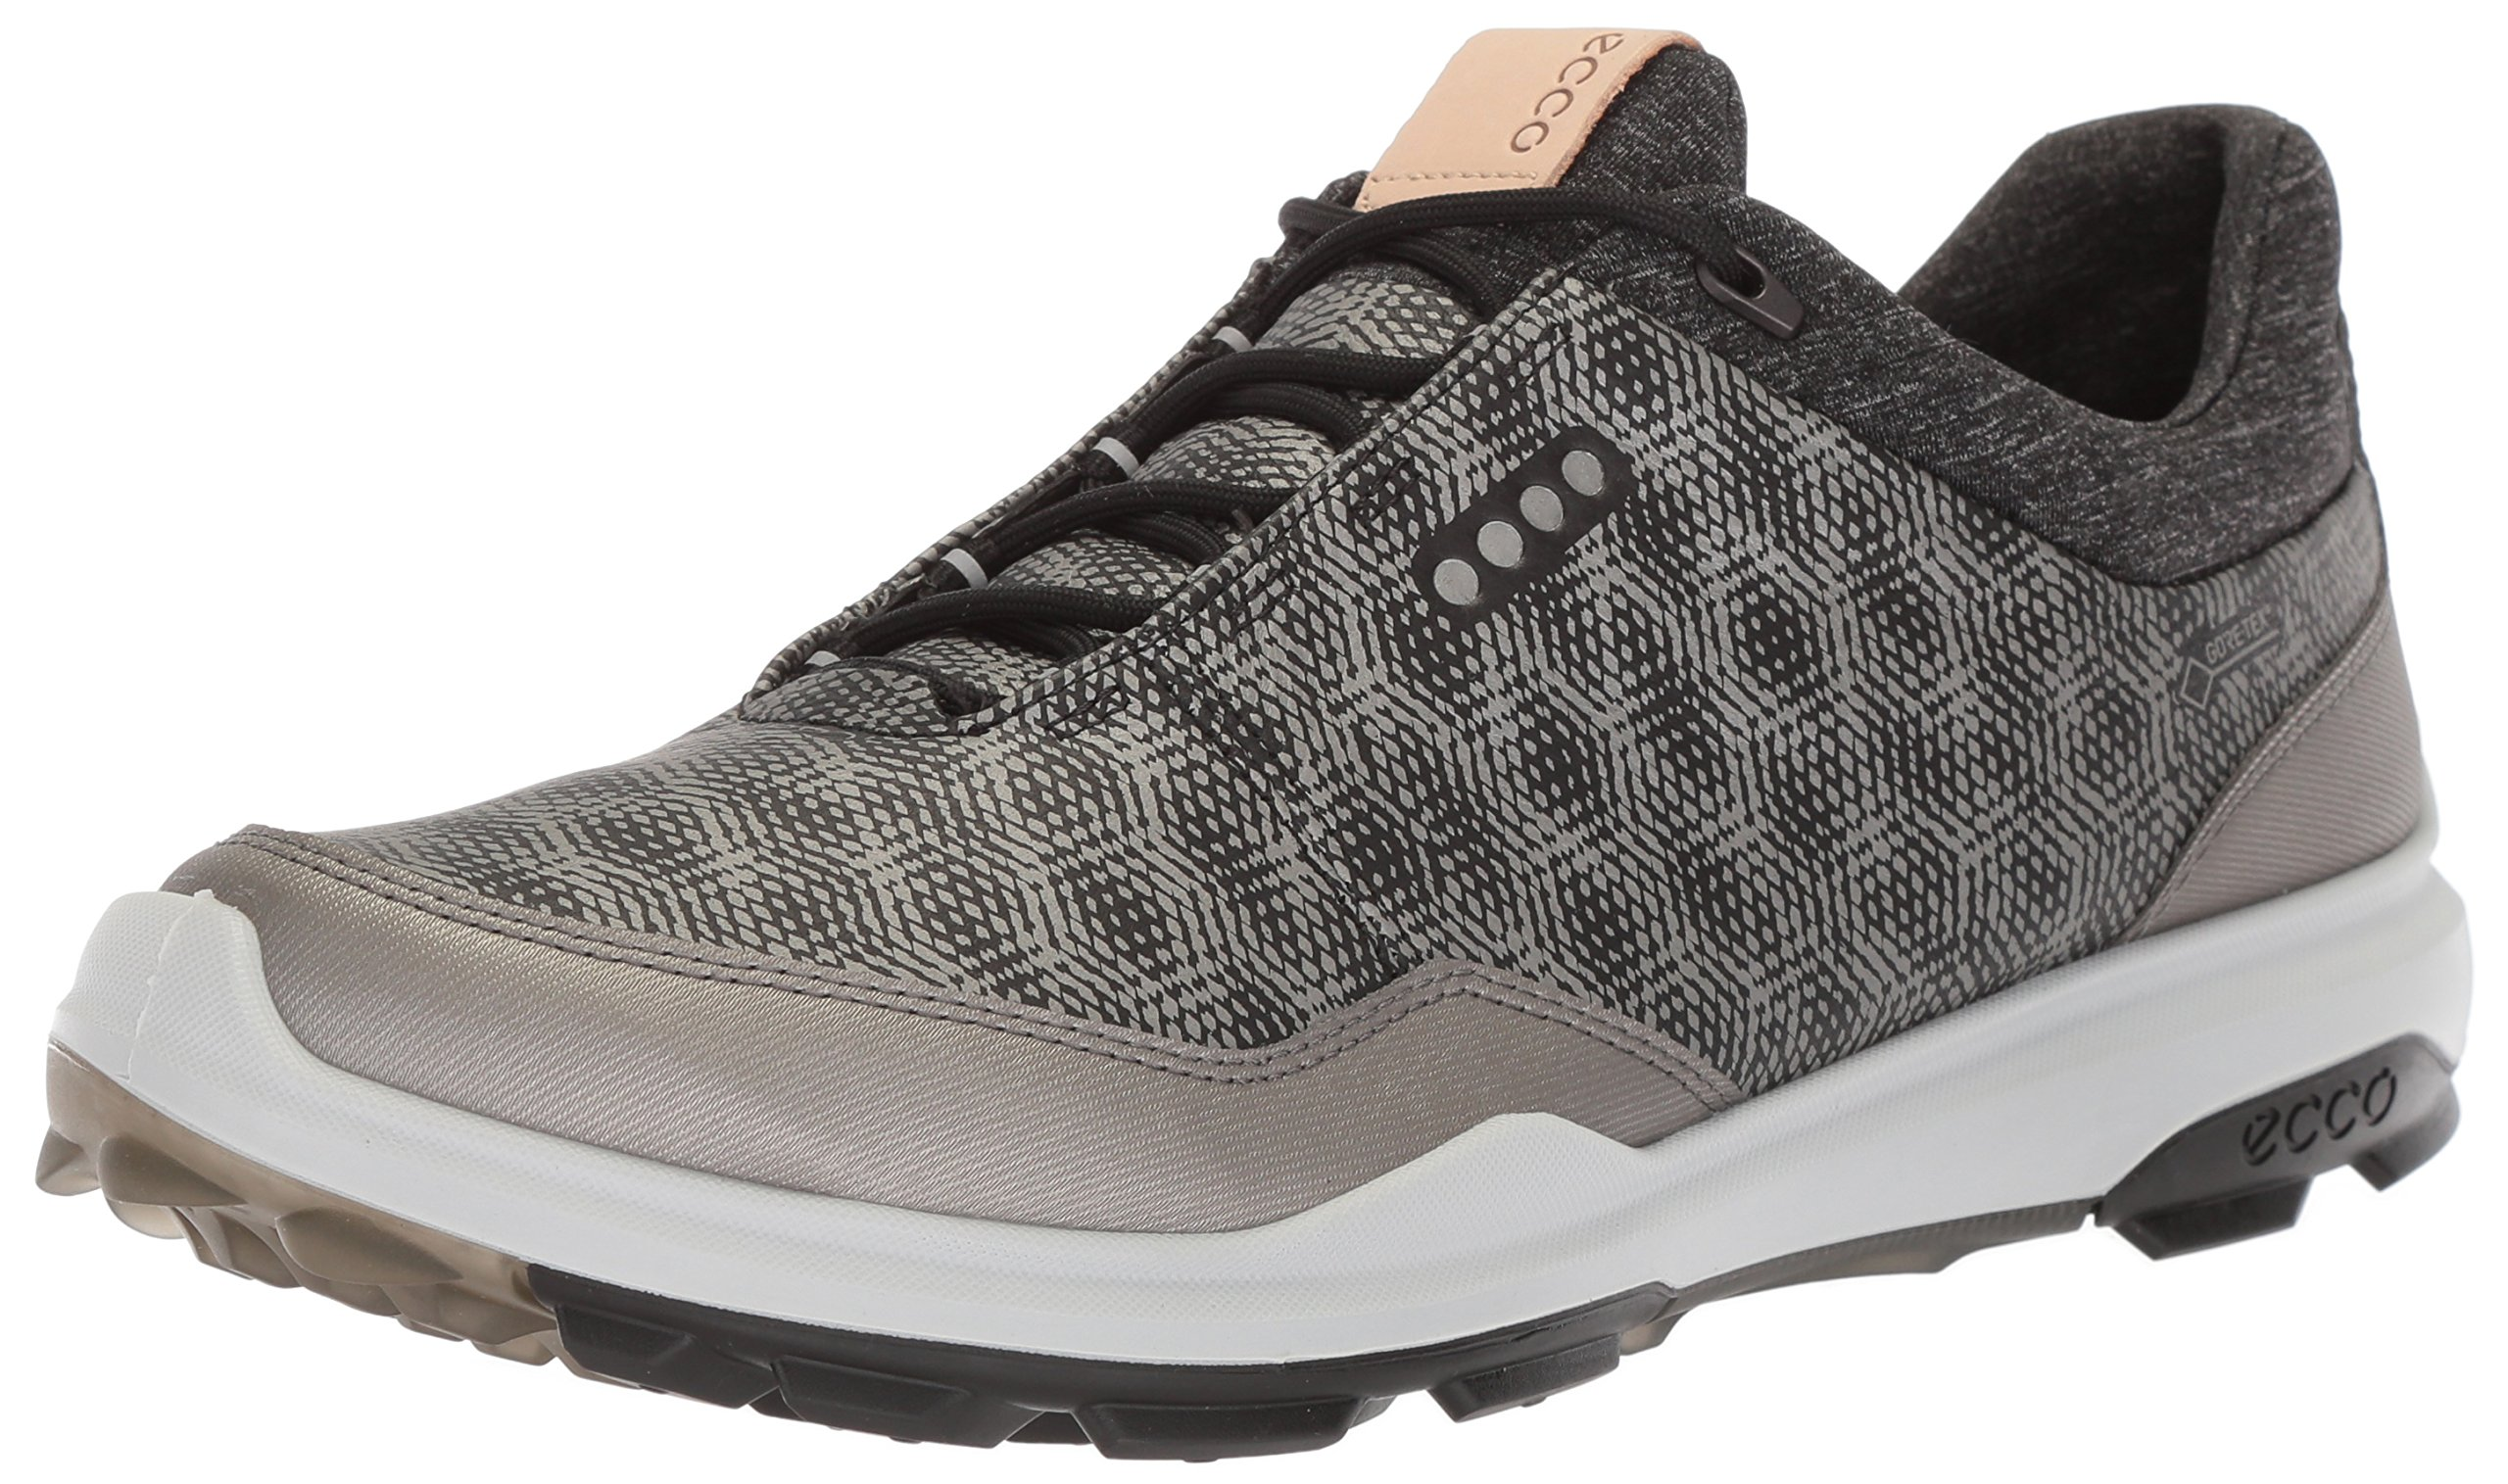 ECCO Men's Biom Hybrid 3 Gore-Tex Golf Shoe, Black/Buffed Silver, 39 M EU (5-5.5 US)